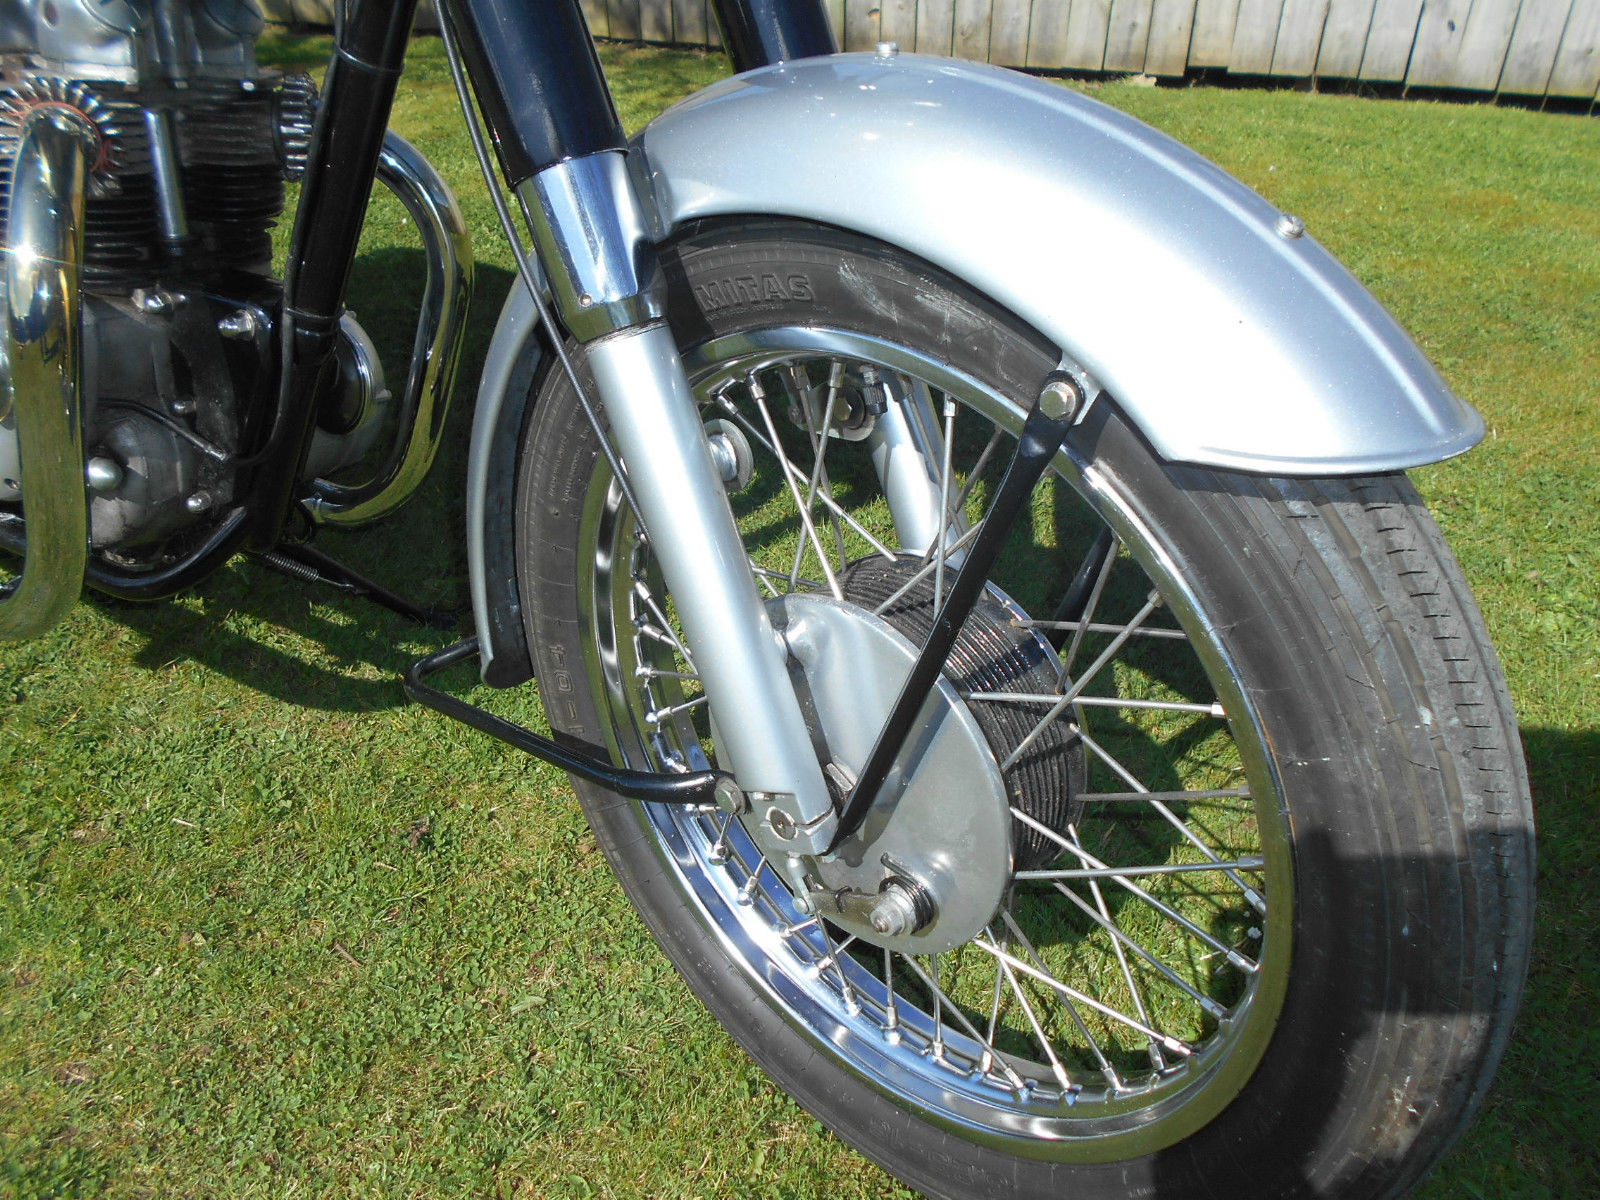 Triumph Speed Twin - 1964 - Front Fender, Front Suspension, Forks, Wheel and Hub.